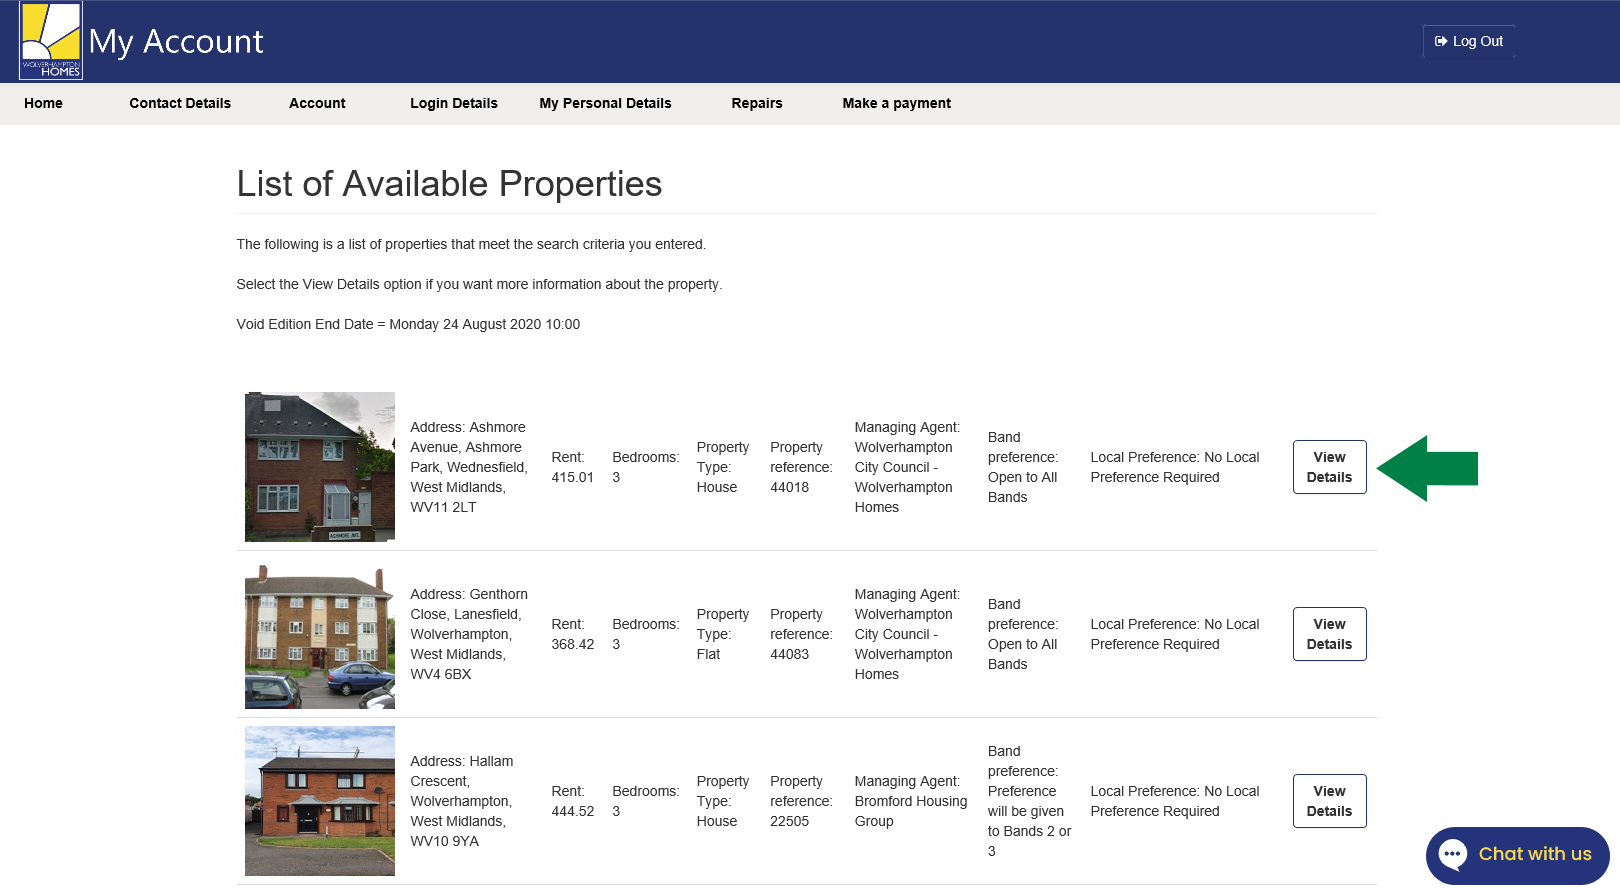 Screenshot of the property details page